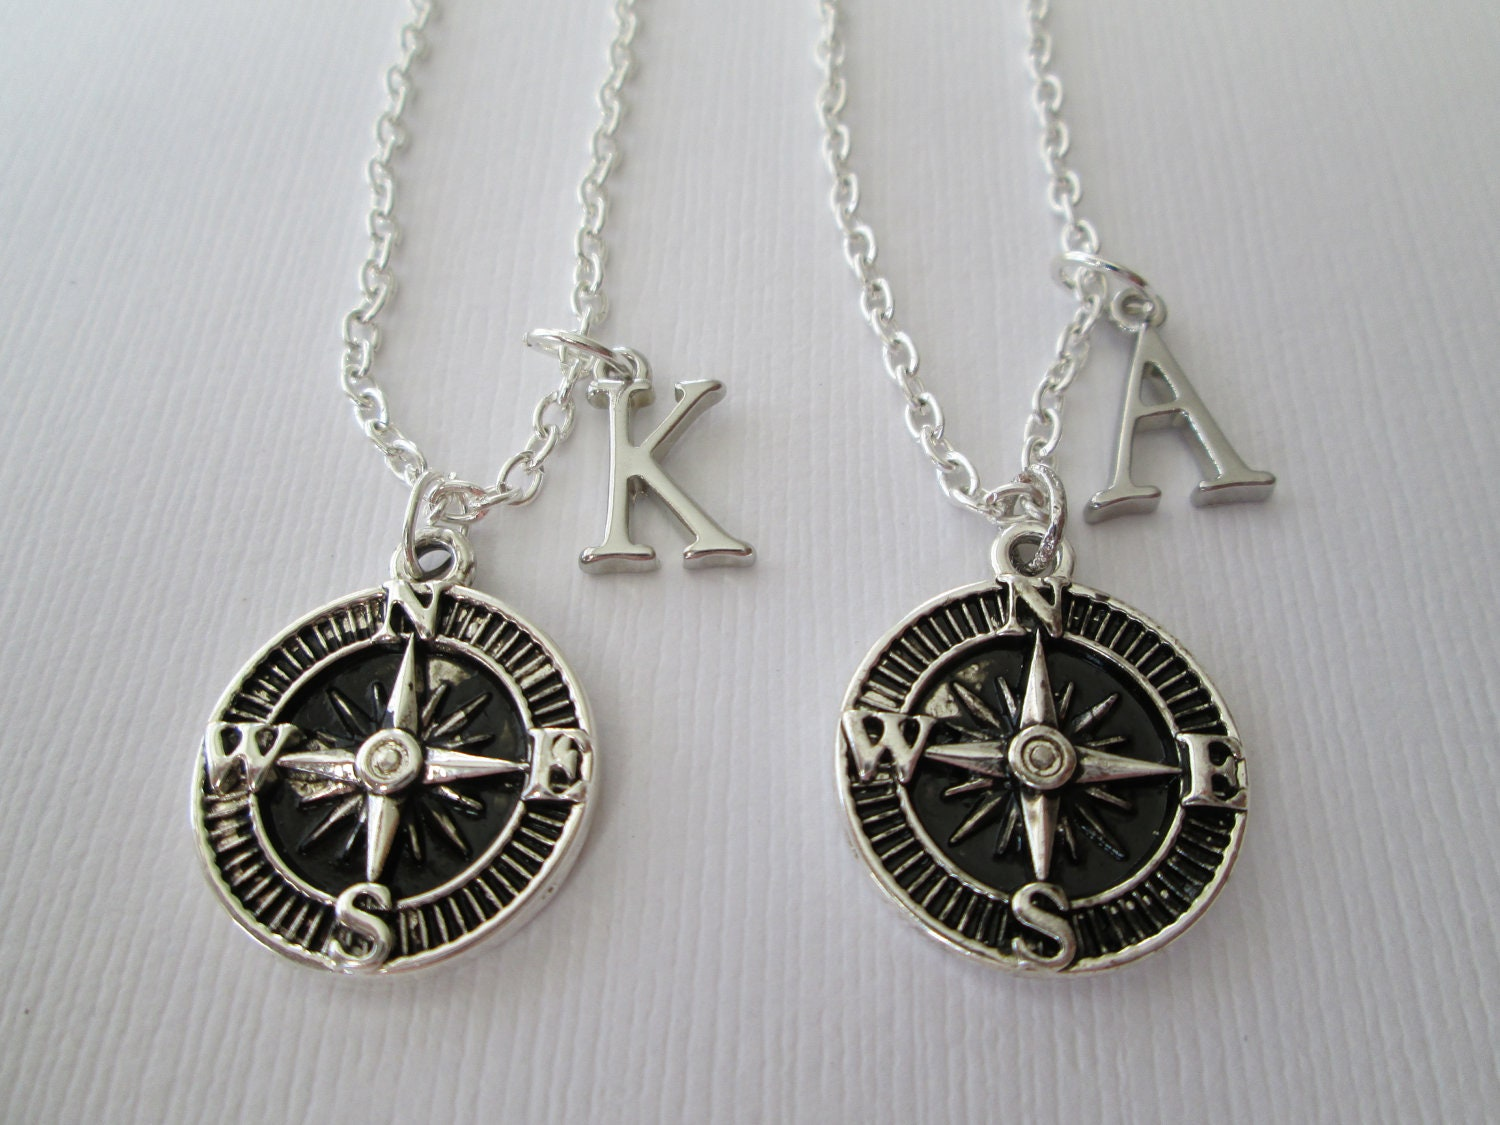 2 compass initial best friend necklaces by hazelsarai on etsy